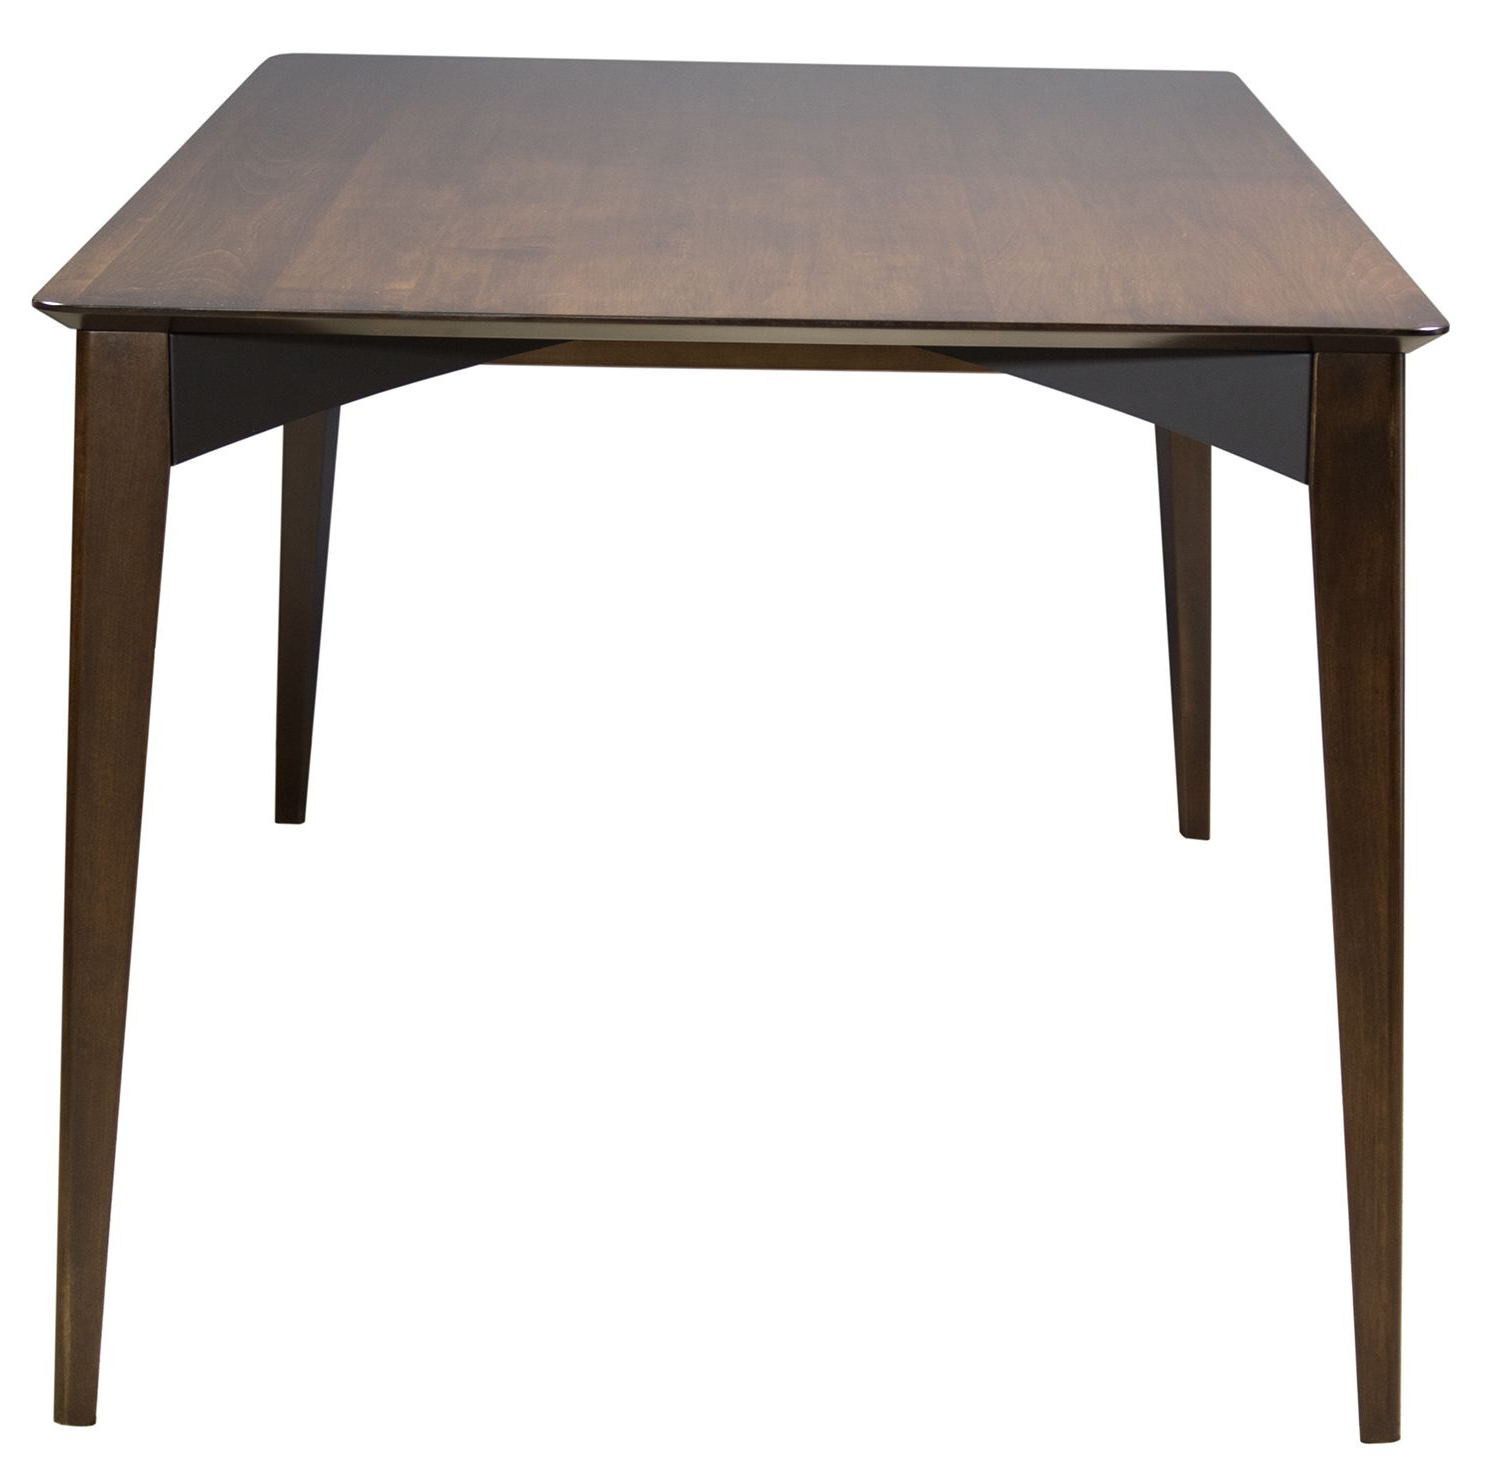 Remi Dining Table In Amaretto Finish From Saloom (View 18 of 20)